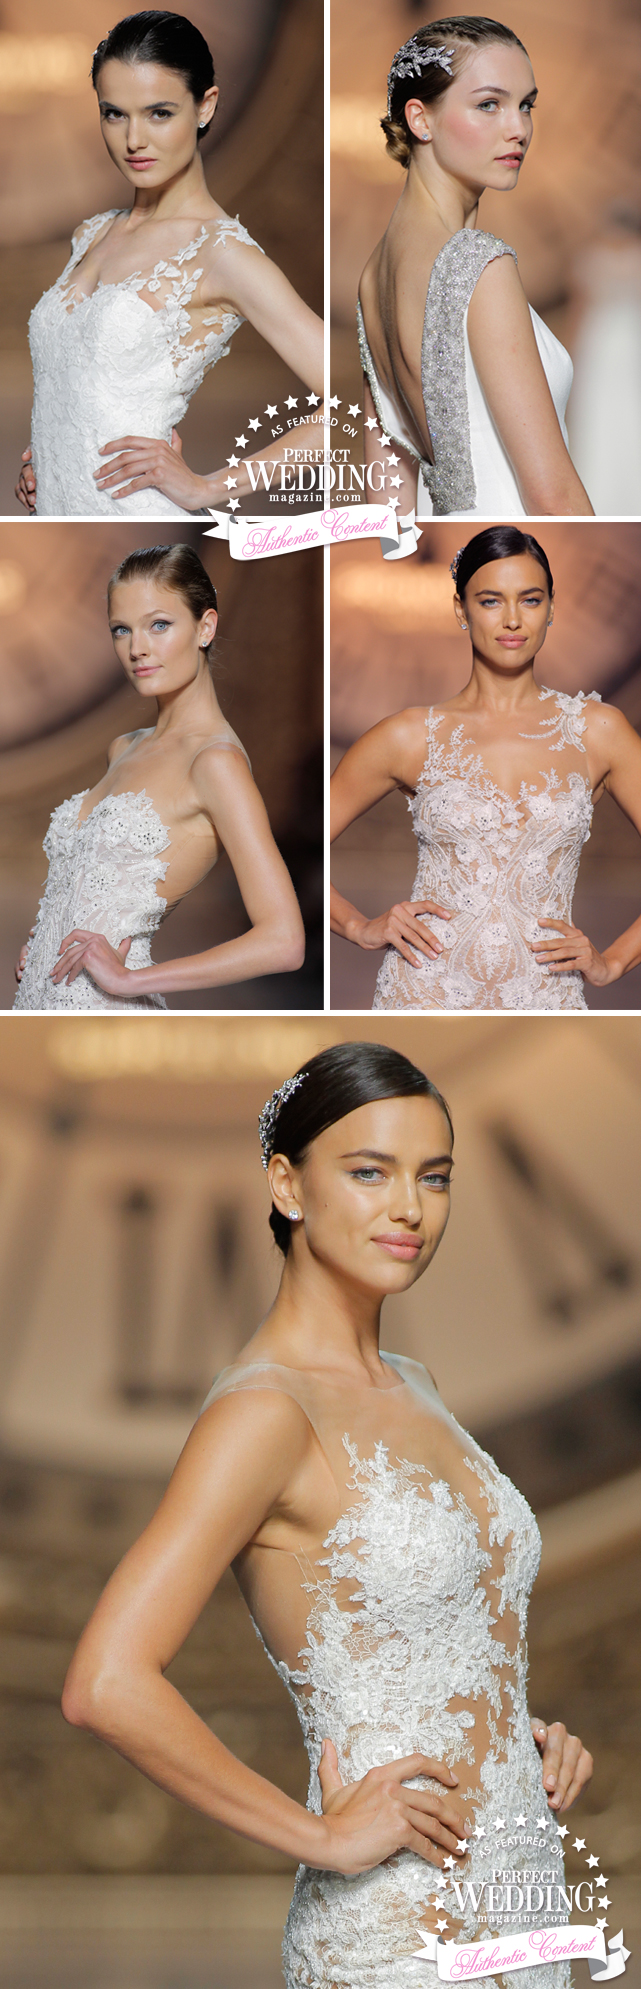 Pronovias, Pronovias Atelier 2016 Collection, Fashion, Bridal Trends, PRONOVIAS FASHION SHOW 2016,Perfect wedding Magazine